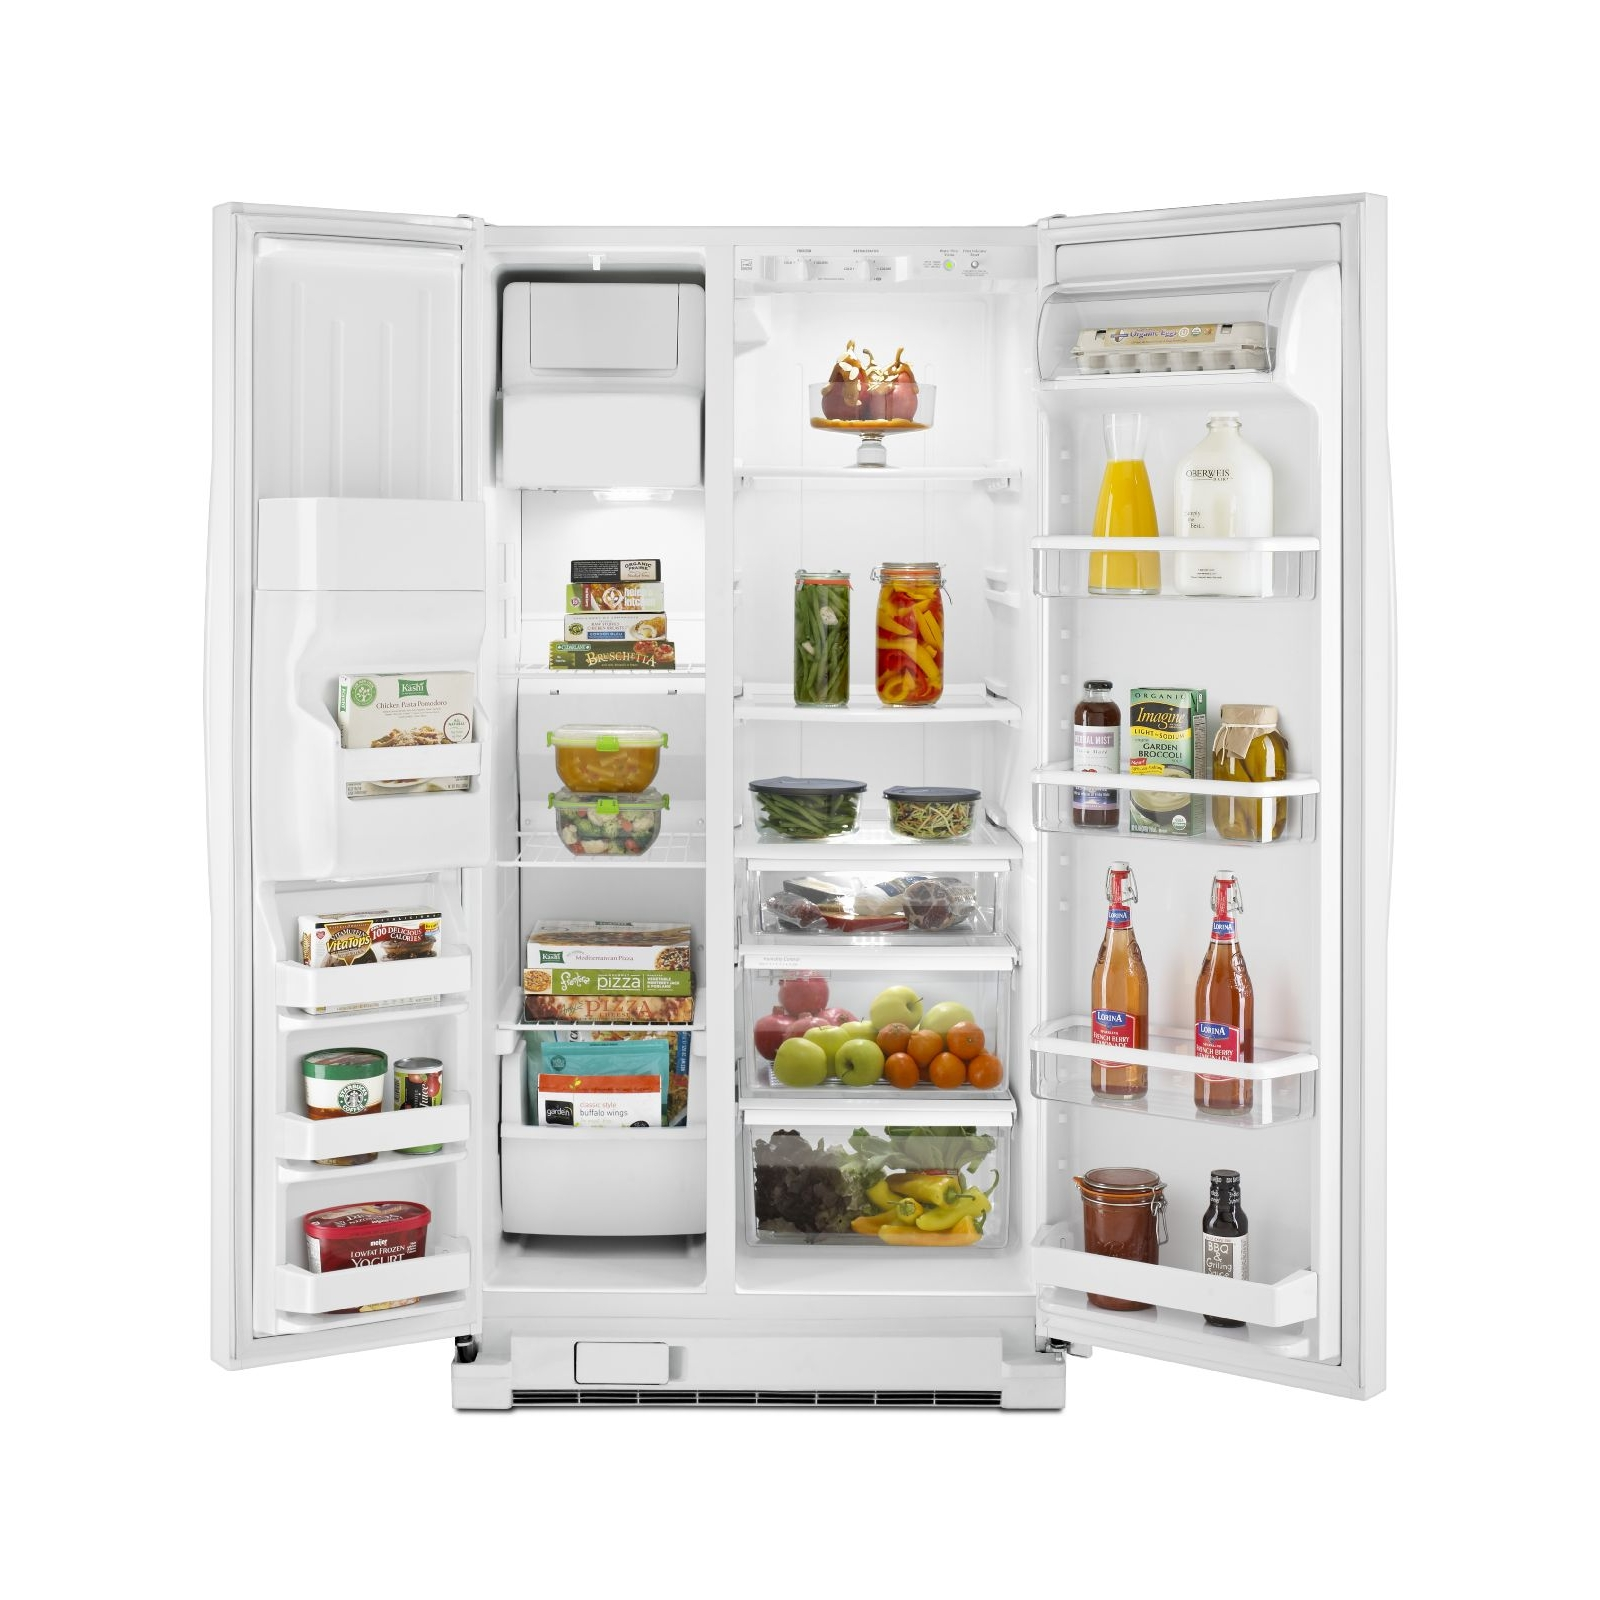 Whirlpool 24.9 cu. ft. Side-by-Side Refrigerator w/ Accu-Chill™ - White